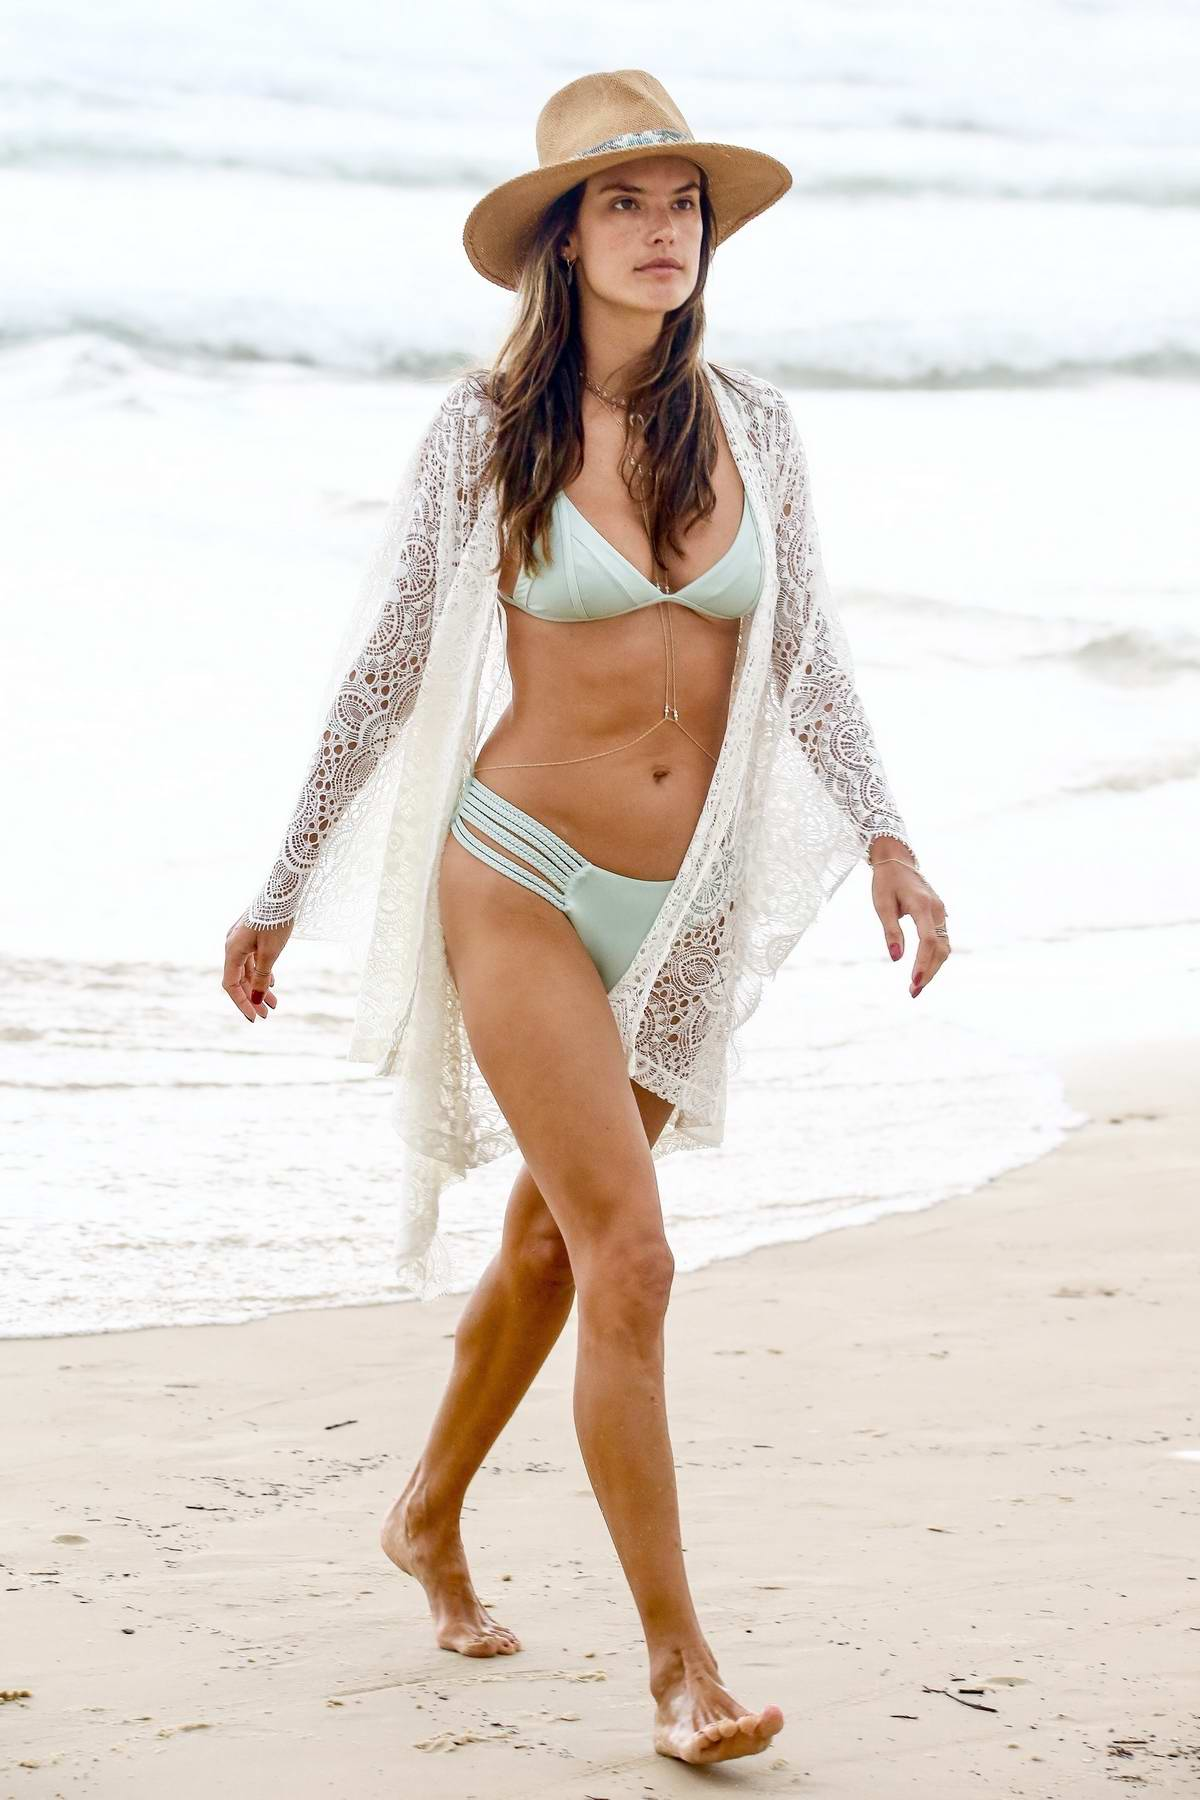 Alessandra Ambrosio dons a pastel teal bikini as she spends another at the Praia Brava beach in Florianoplis, Brazil